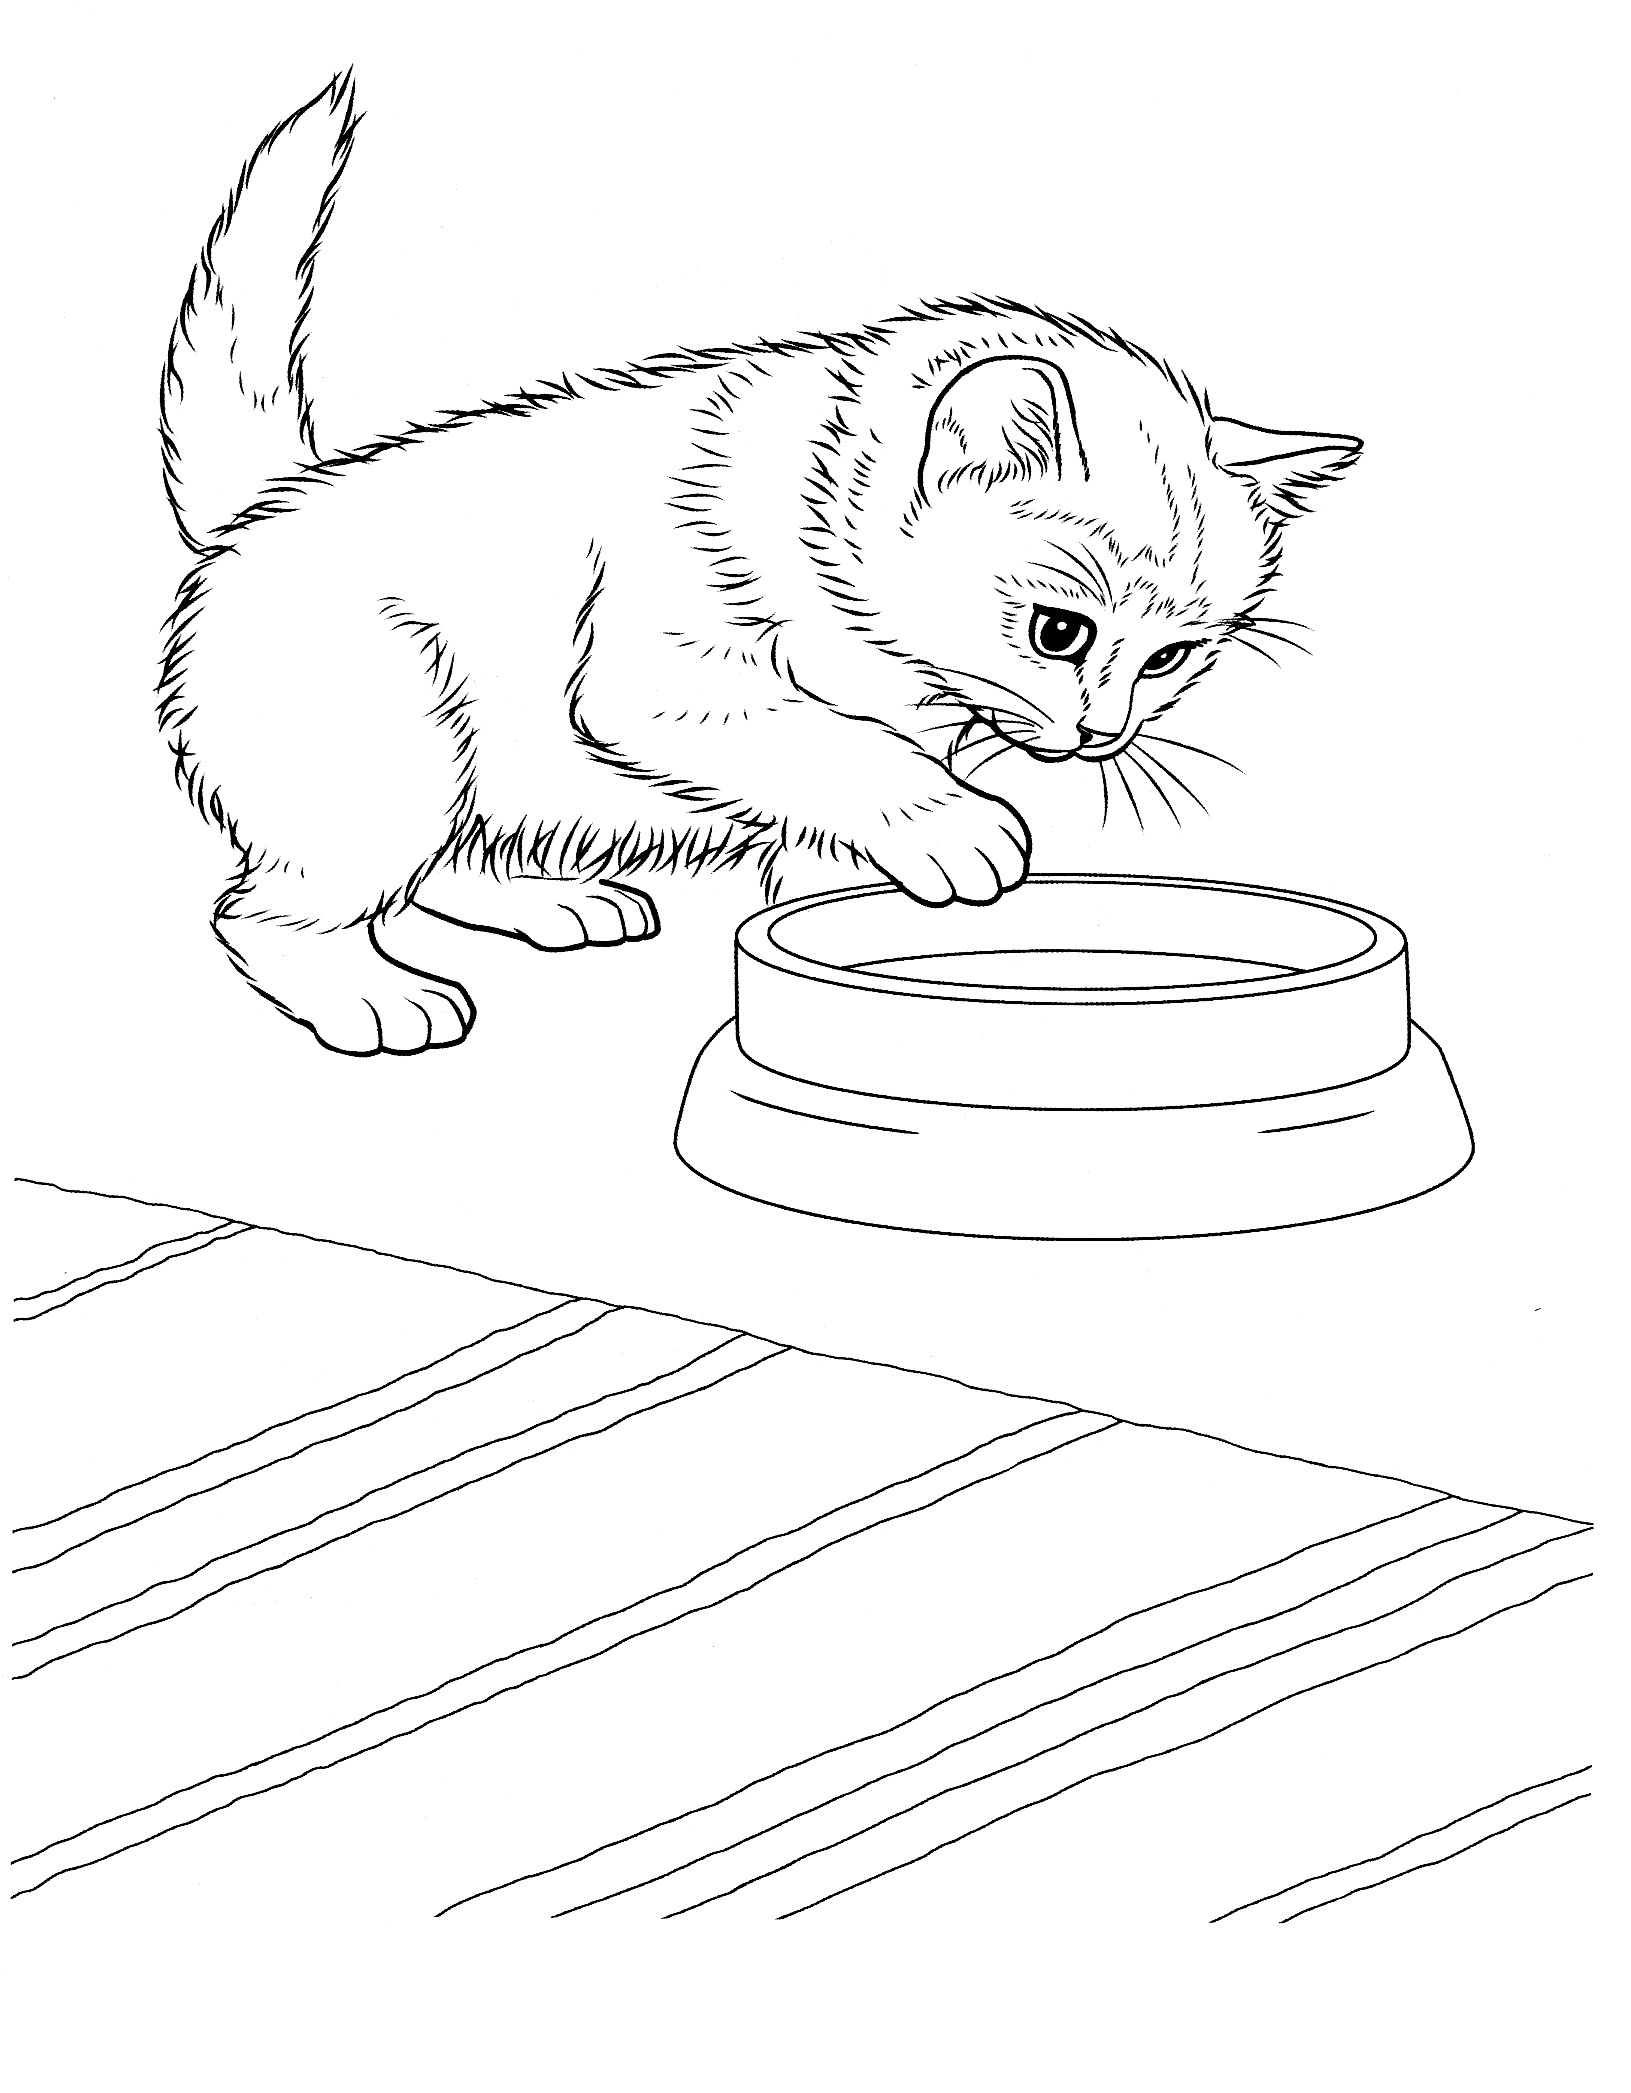 It's just an image of Sweet Kitten Coloring Pages Printable